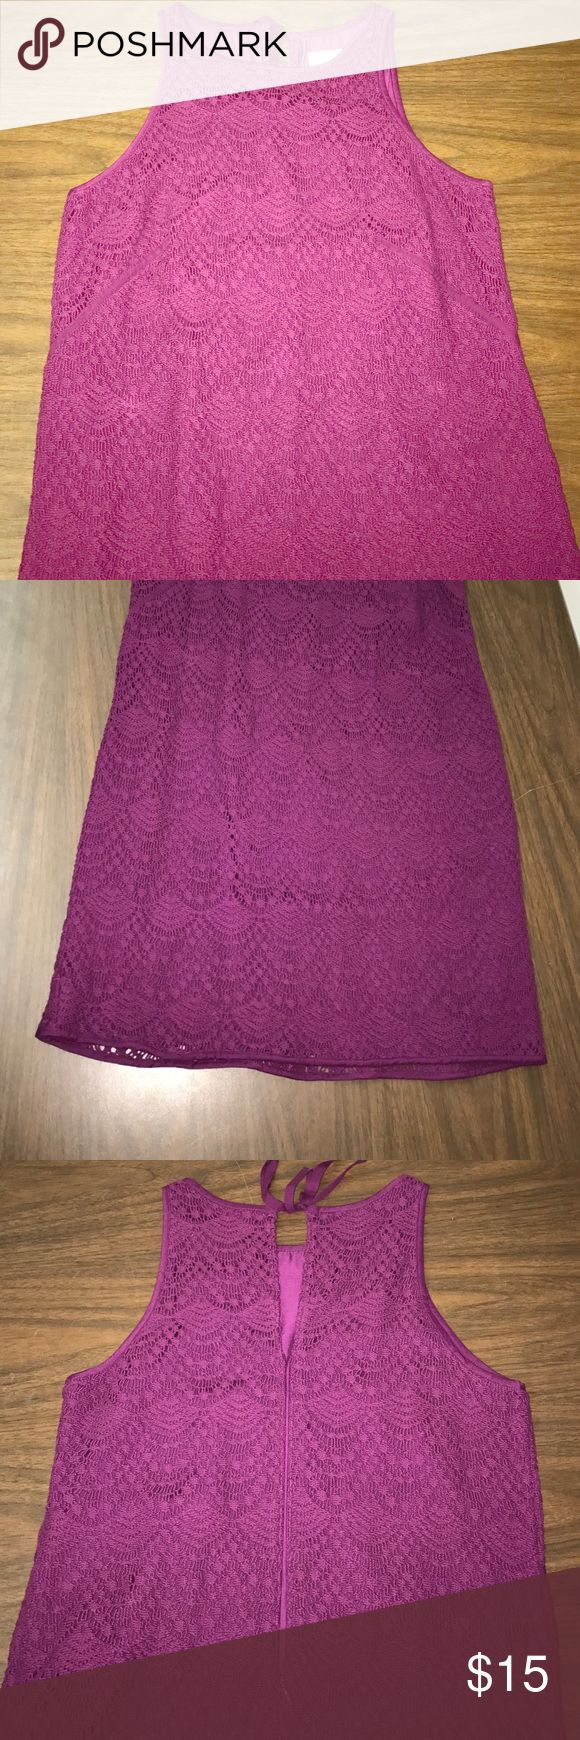 "Ann Taylor LOFT Crochet Dress Ann Taylor LOFT size 6 Petite. Purple Crochet overlay dress. Sleeveless. Round neckline. Tie bow at back of neck with a 6"" keyhole underneath. 10"" zipper under that. Total length: 32.5"". Fully lined. Shell: 88% Cotton 12% Nylon. Lining: 100% Polyester. Worn once, no flaws! LOFT Dresses Midi"